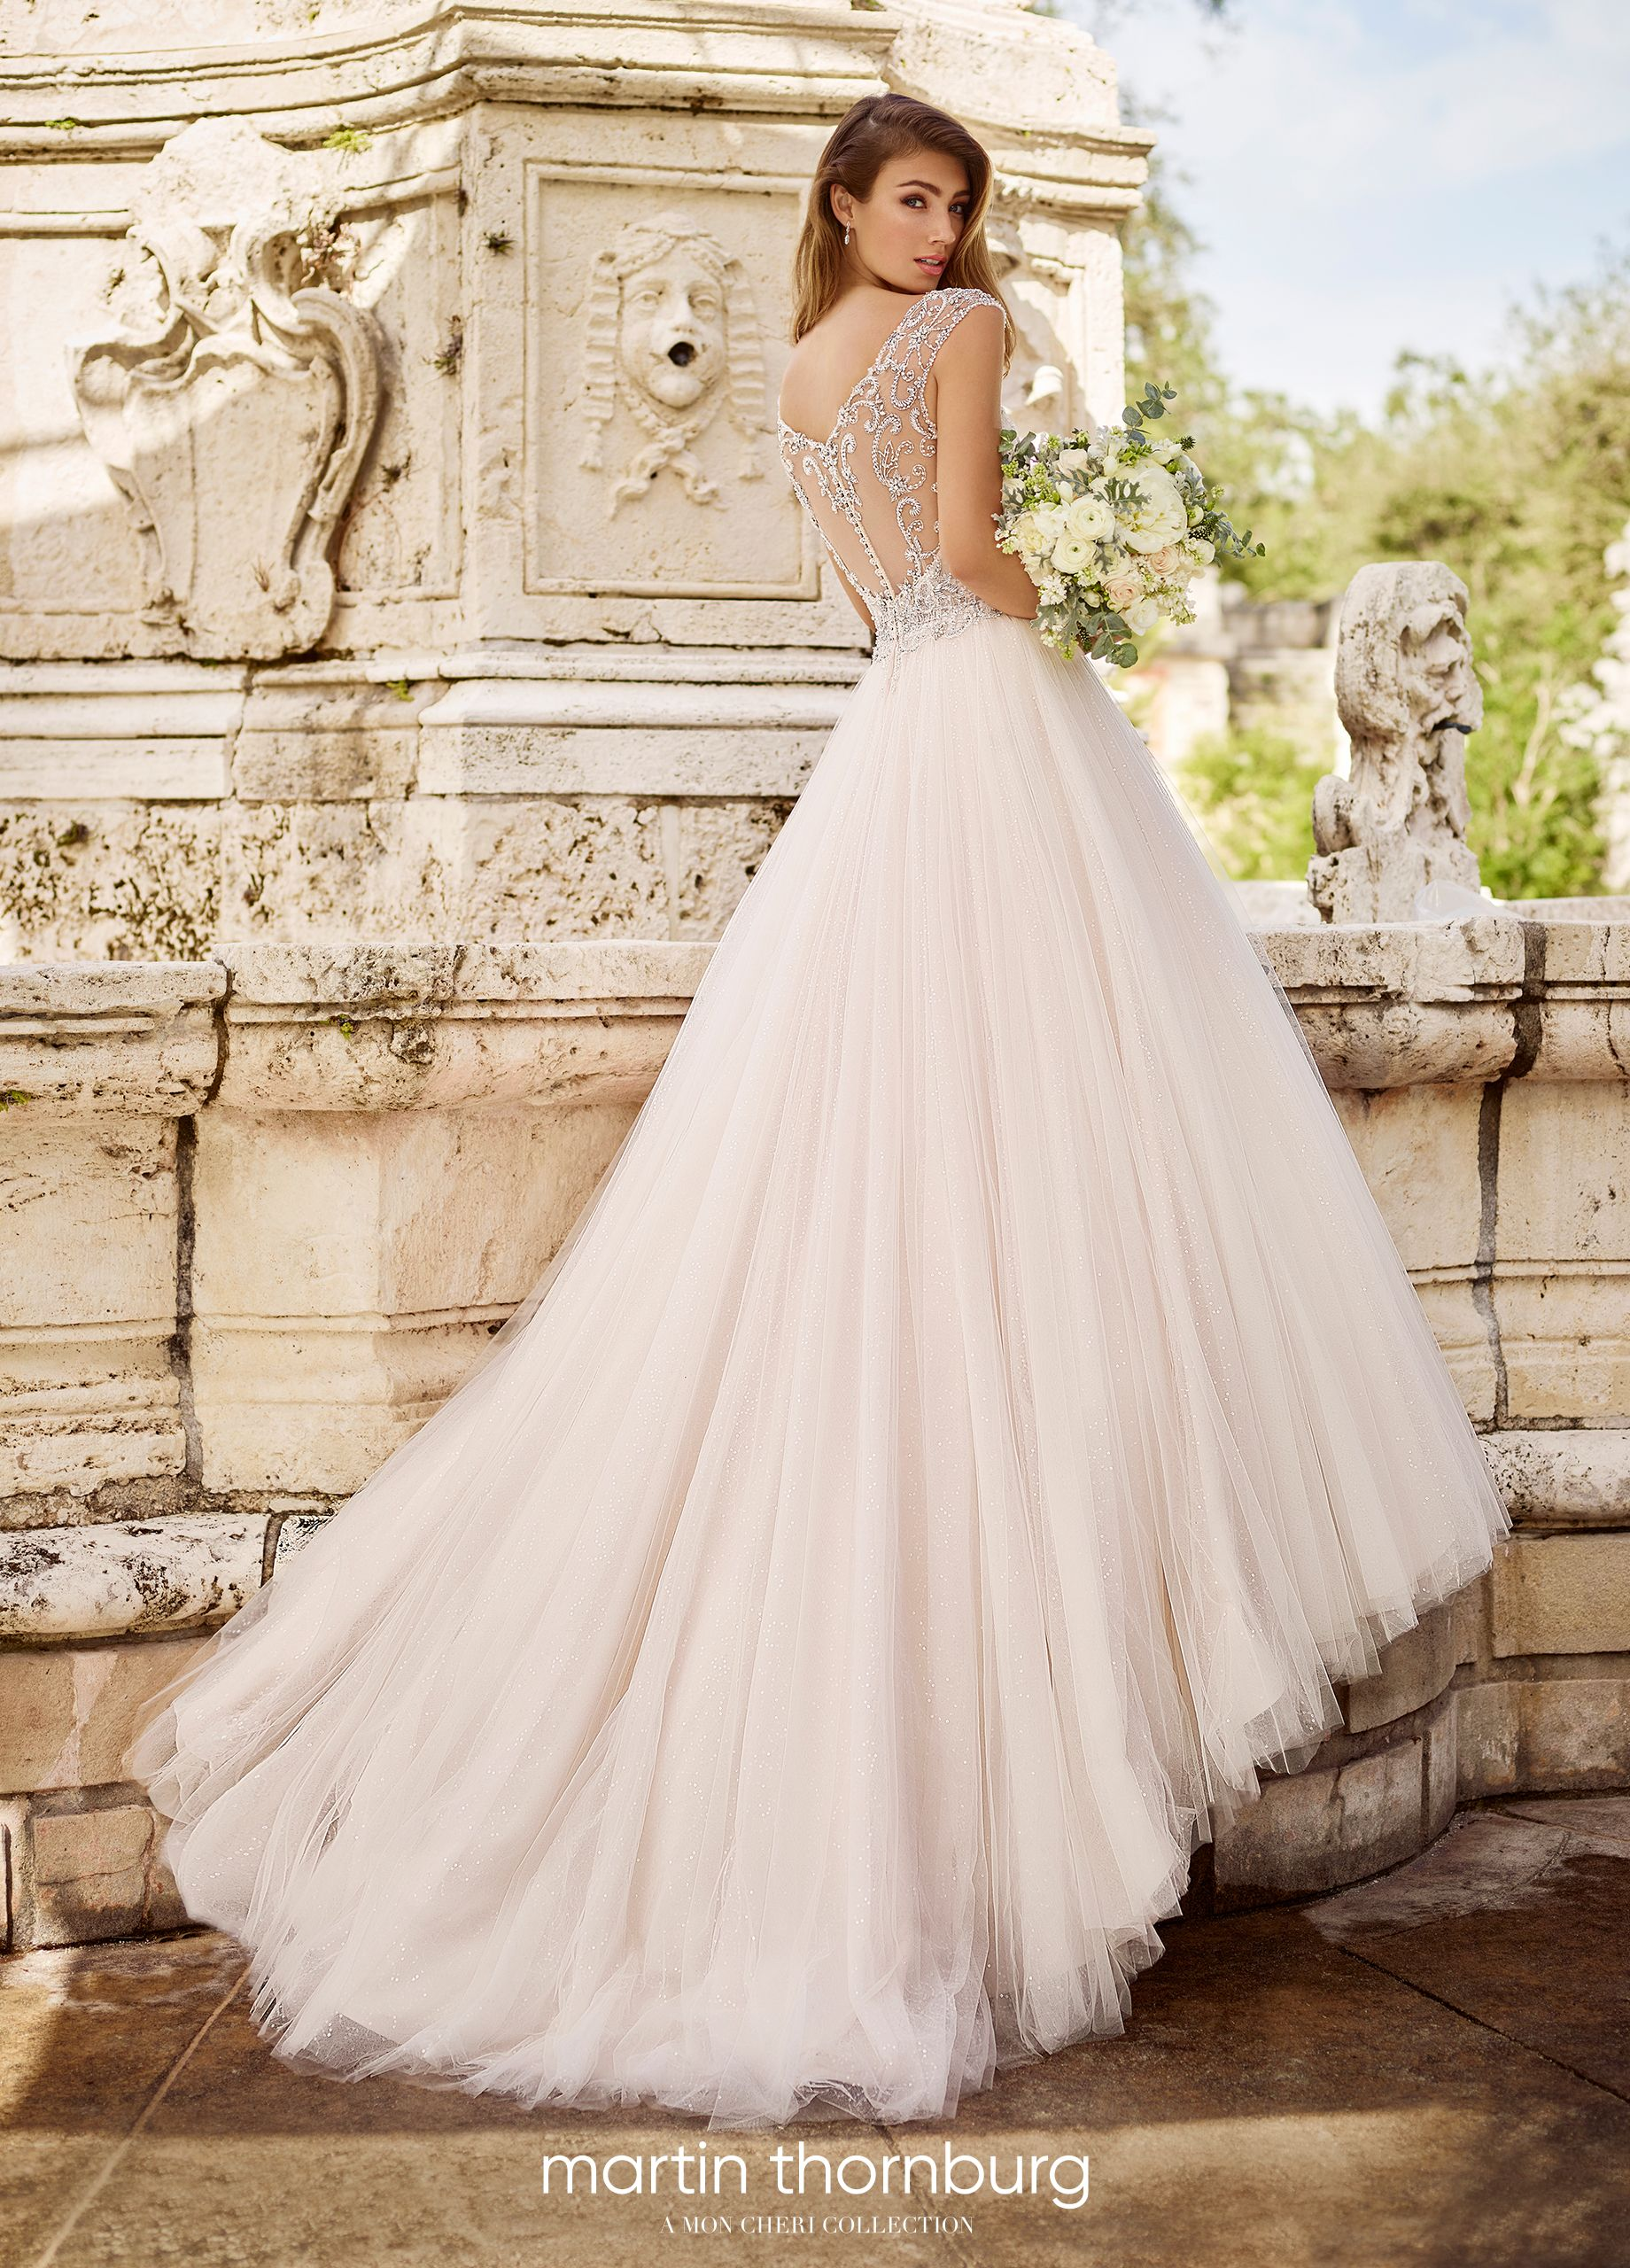 Sheer long sleeve wedding dresses  Lace and Tulle Ballgown Wedding Dress with Beaded Illusion Cap